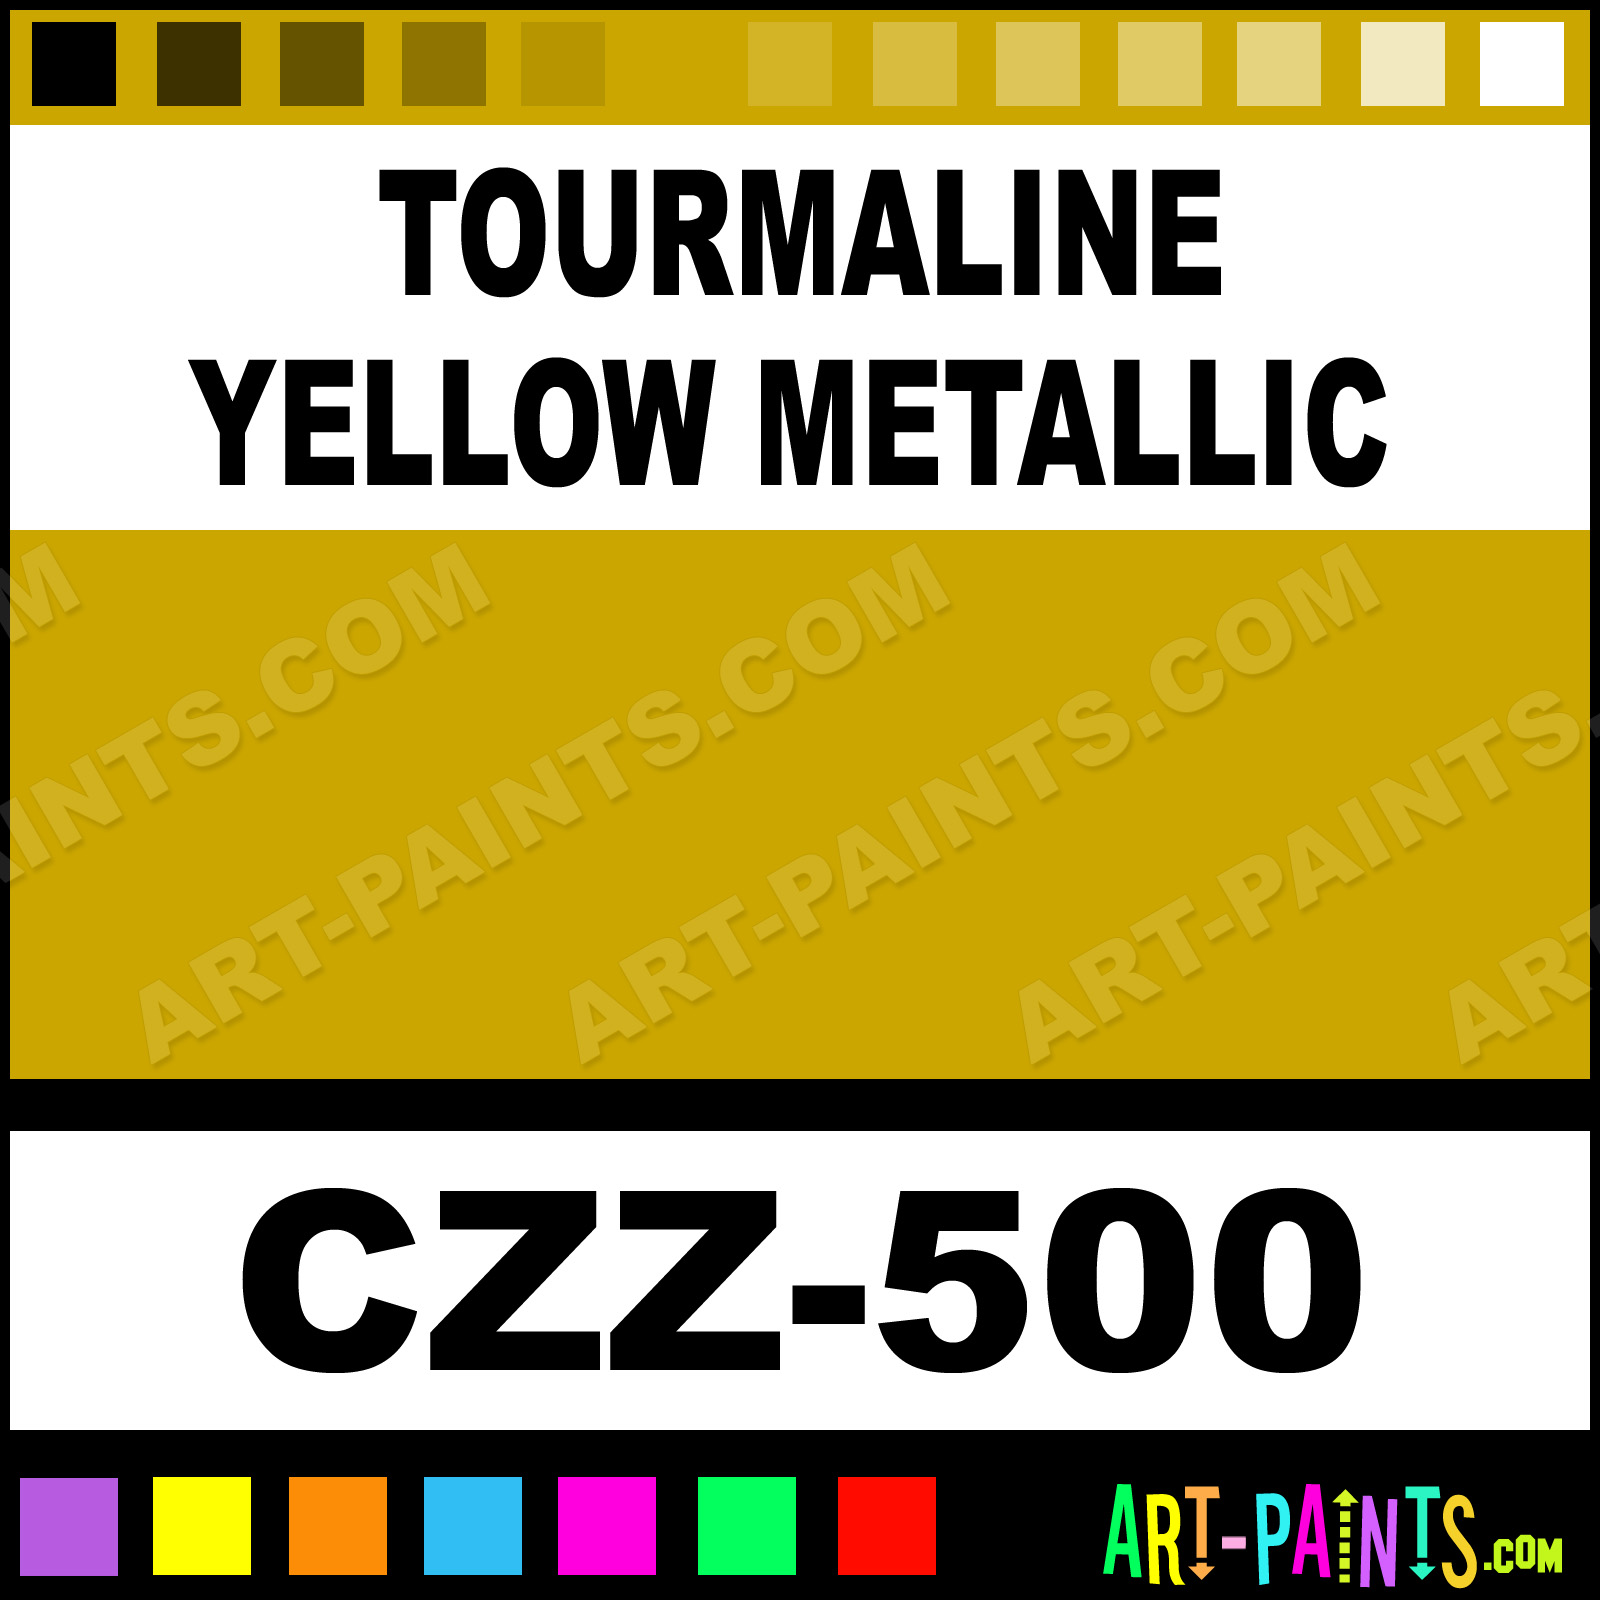 Tourmaline yellow metallic cand e z airbrush spray paints for Metallic yellow paint